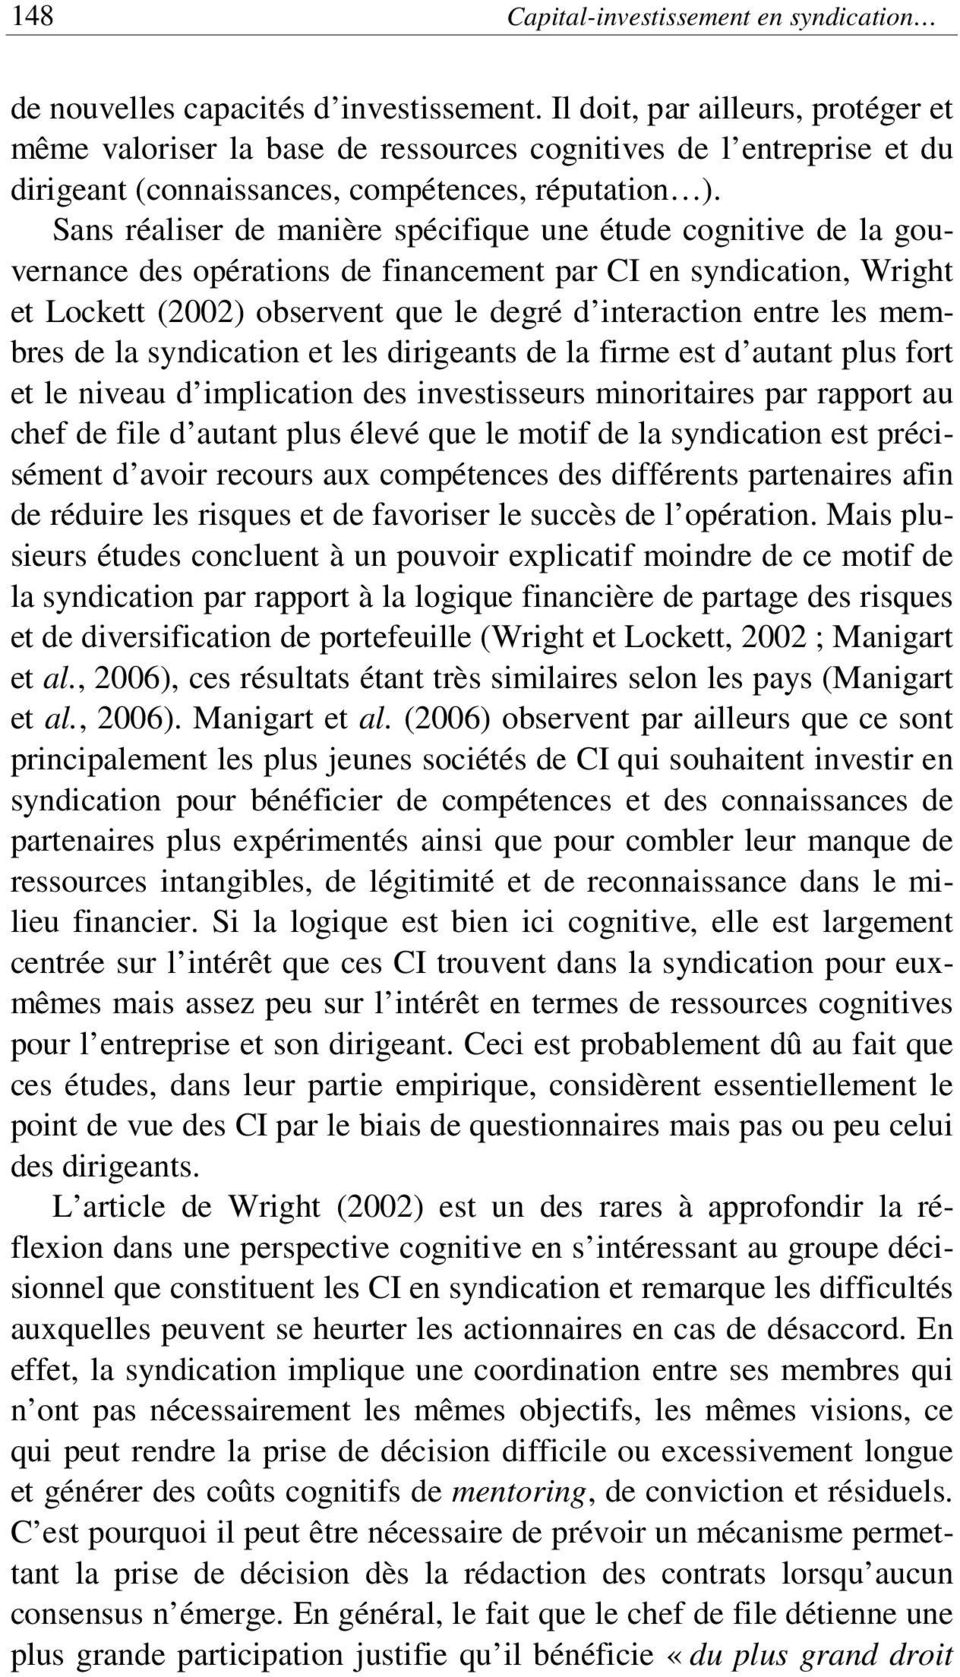 Sans réaliser de manière spécifique une étude cognitive de la gouvernance des opérations de financement par CI en syndication, Wright et Lockett (2002) observent que le degré d interaction entre les